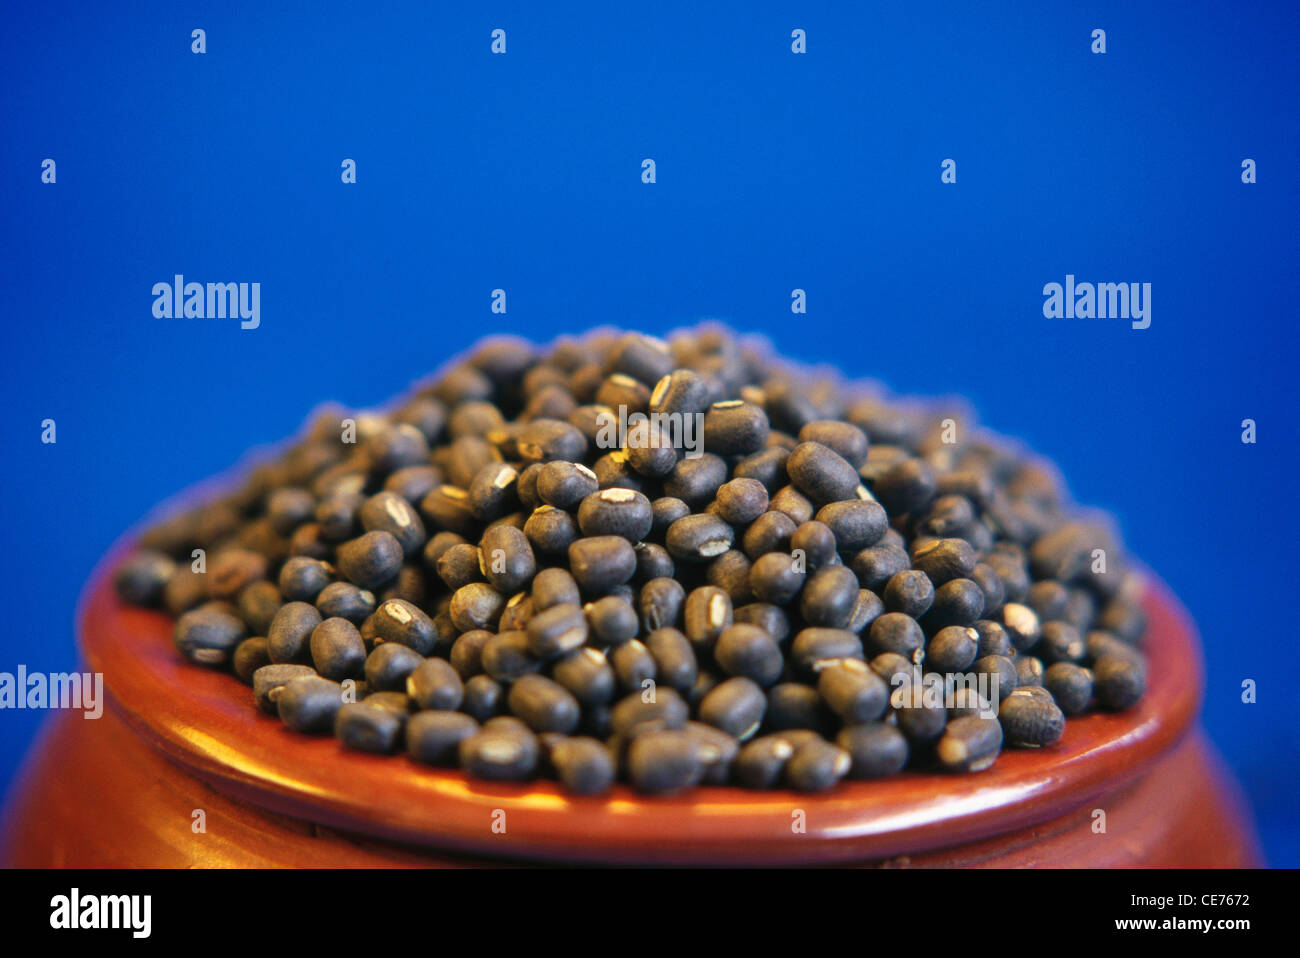 Whole Black Lentils Urad Dal Black Gram Lens Culinaris In Stock Photo Alamy